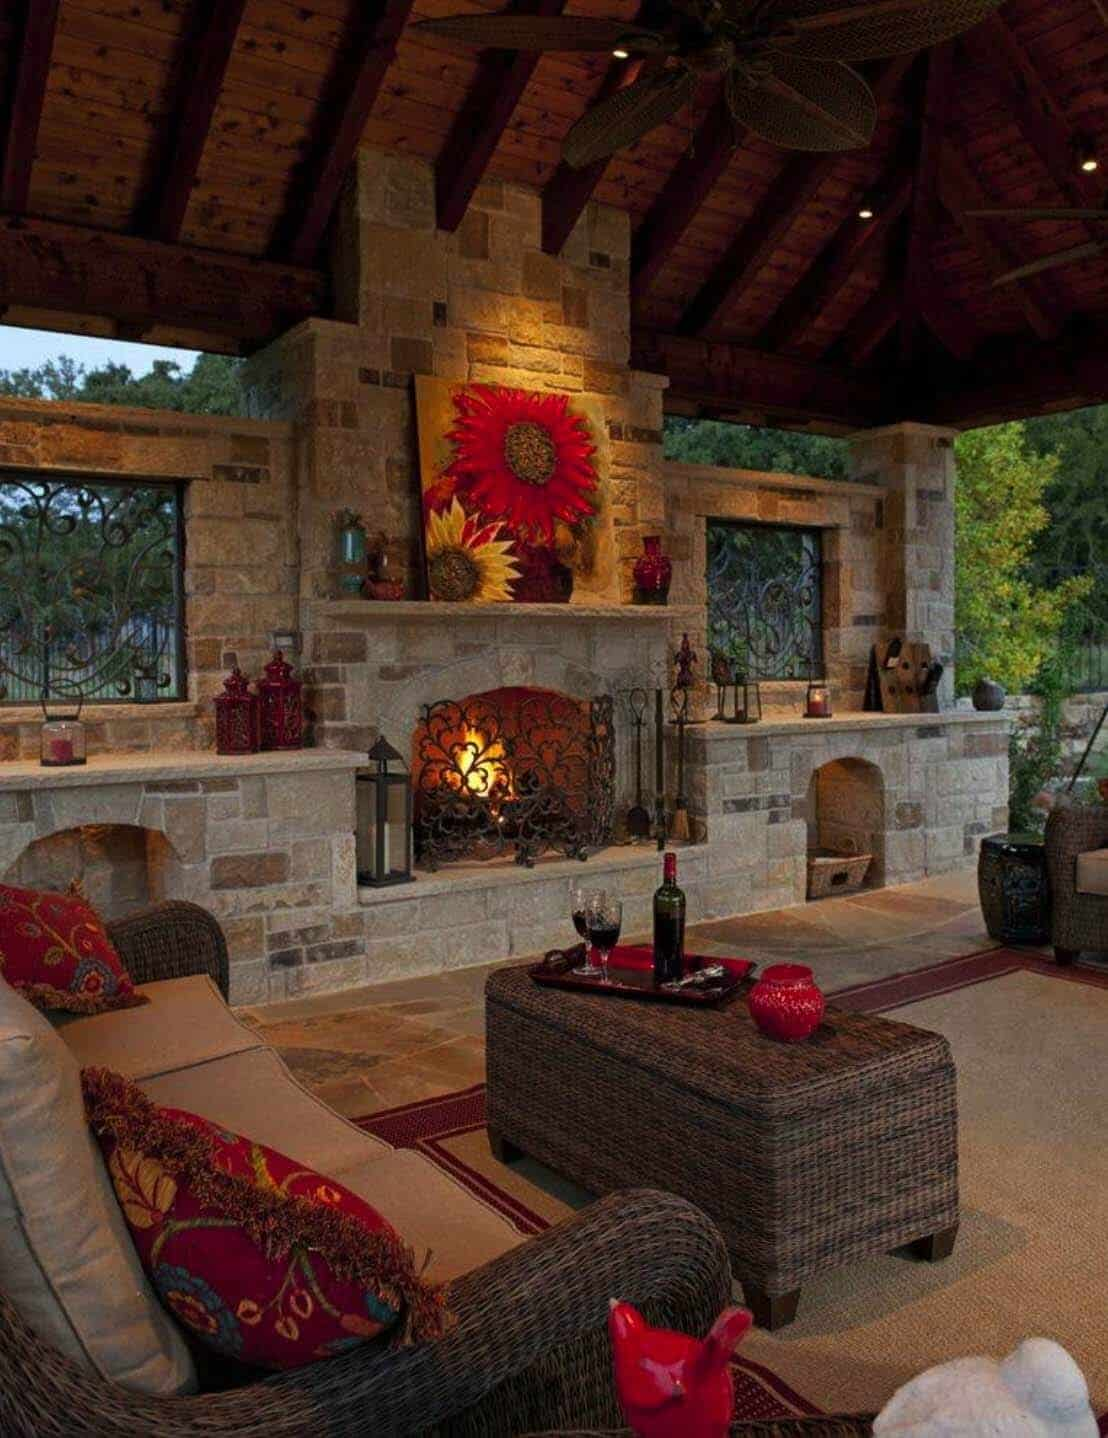 35 Brilliant and inspiring patio ideas for outdoor living ... on Outdoor Living And Patio id=19438